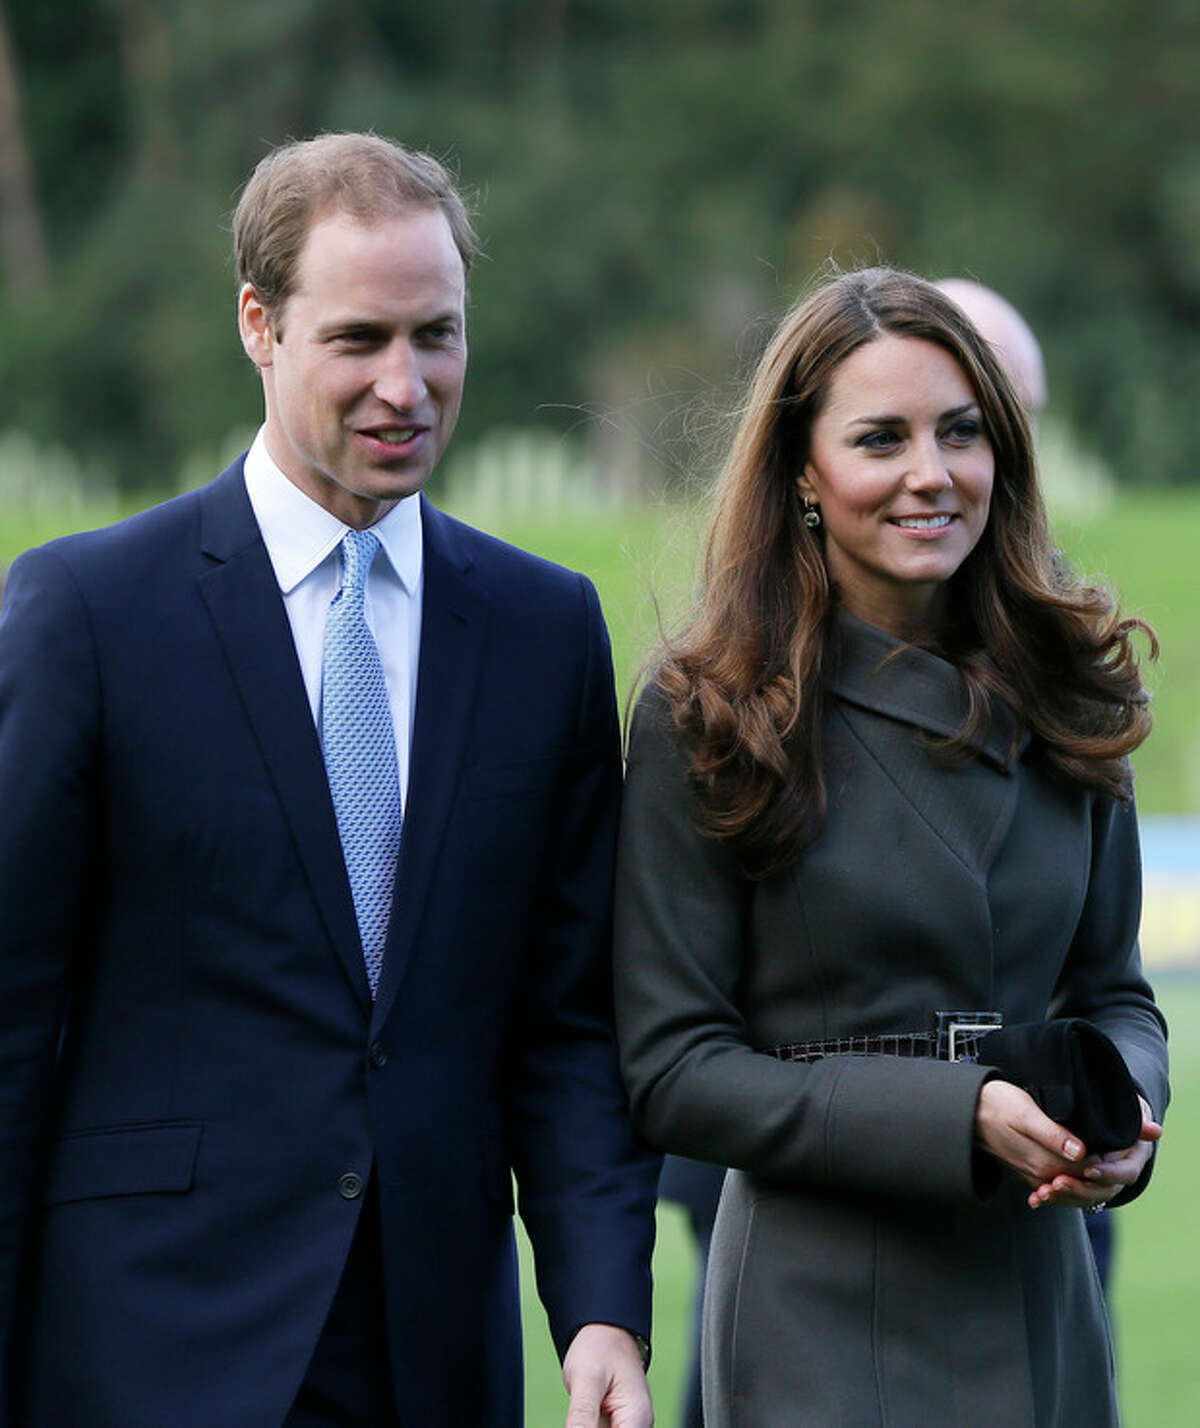 AP file photo Britain's Prince William, left, and his wife Kate, the Duchess of Cambridge, visit a football training pitch at St George's Park near Burton Upon Trent in Staffordshire, England, in this file photo dated Tuesday, Oct. 9.